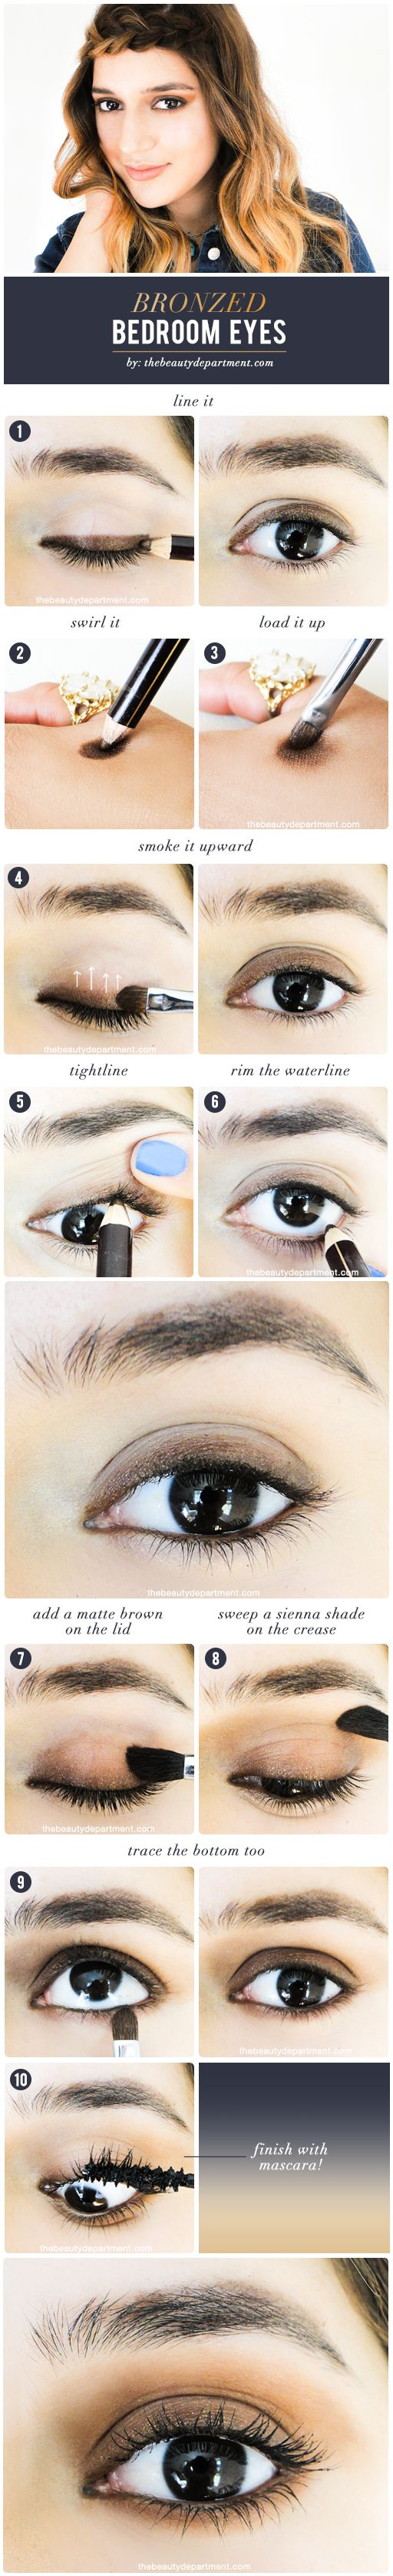 25 best ideas about news today on pinterest tech news for Bedroom eyes makeup